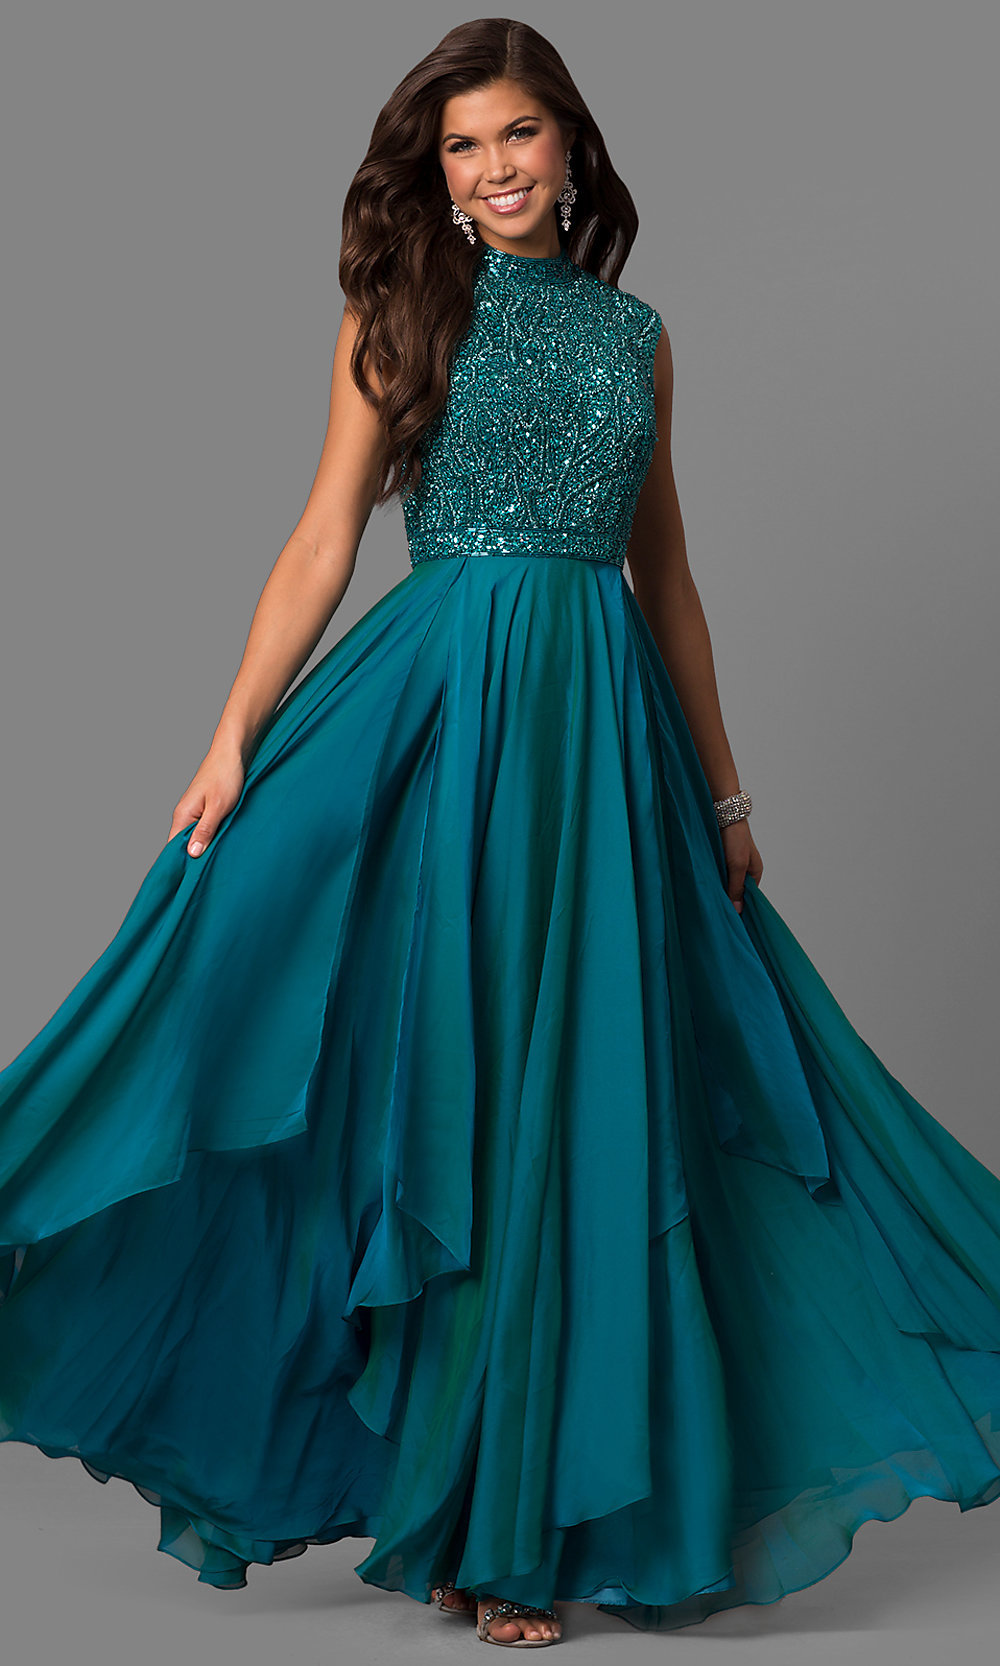 Prom dress sherri hill jade